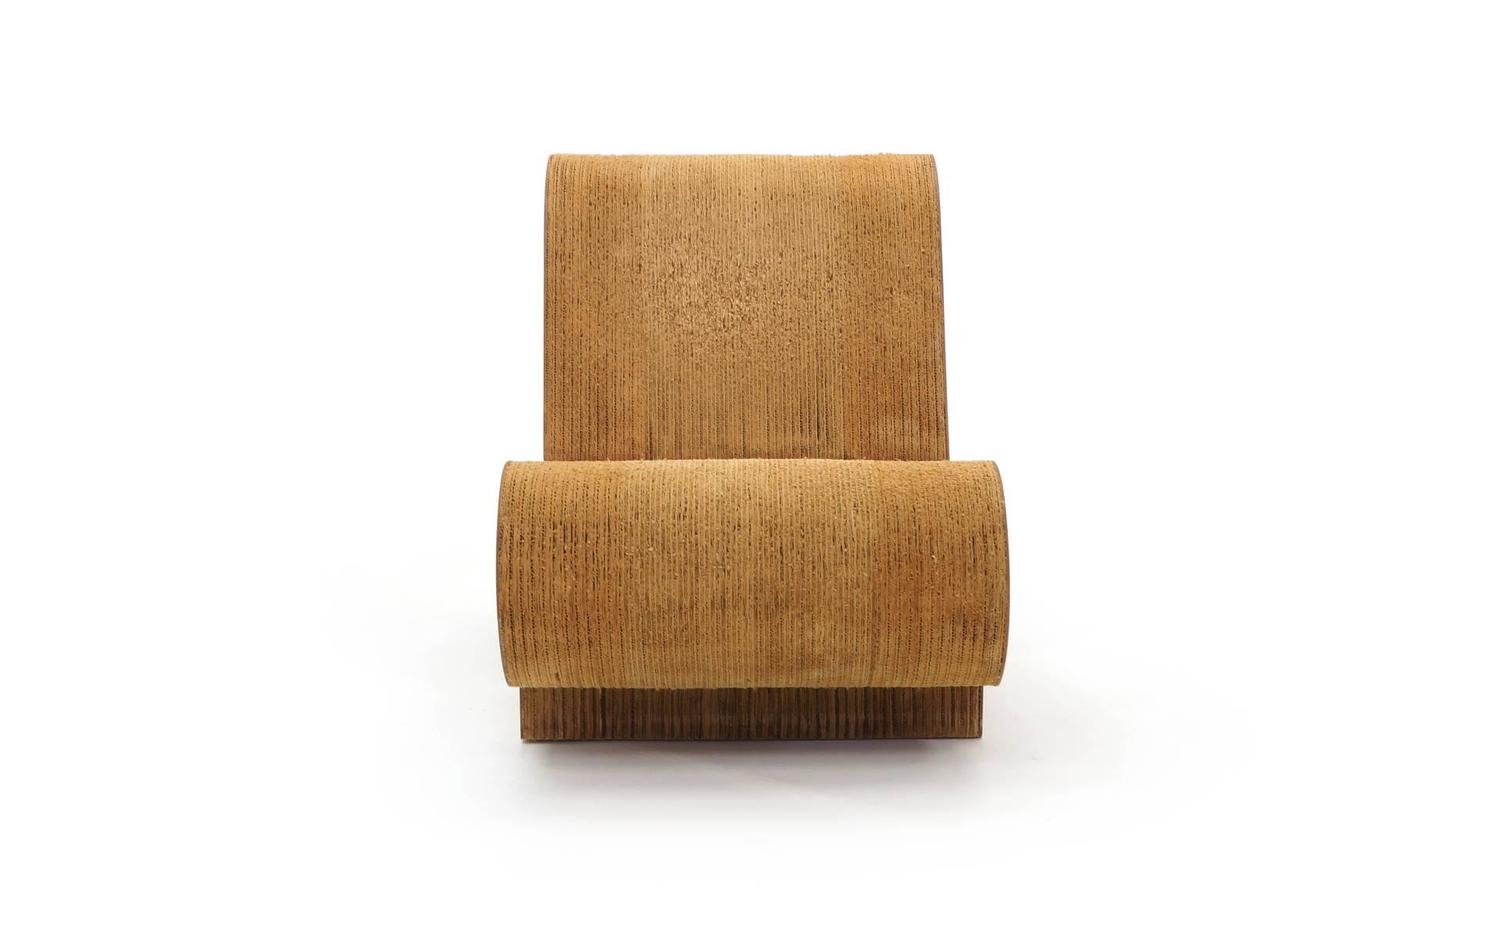 frank gehry cardboard chair top rated beach chairs rare original easy edges contour